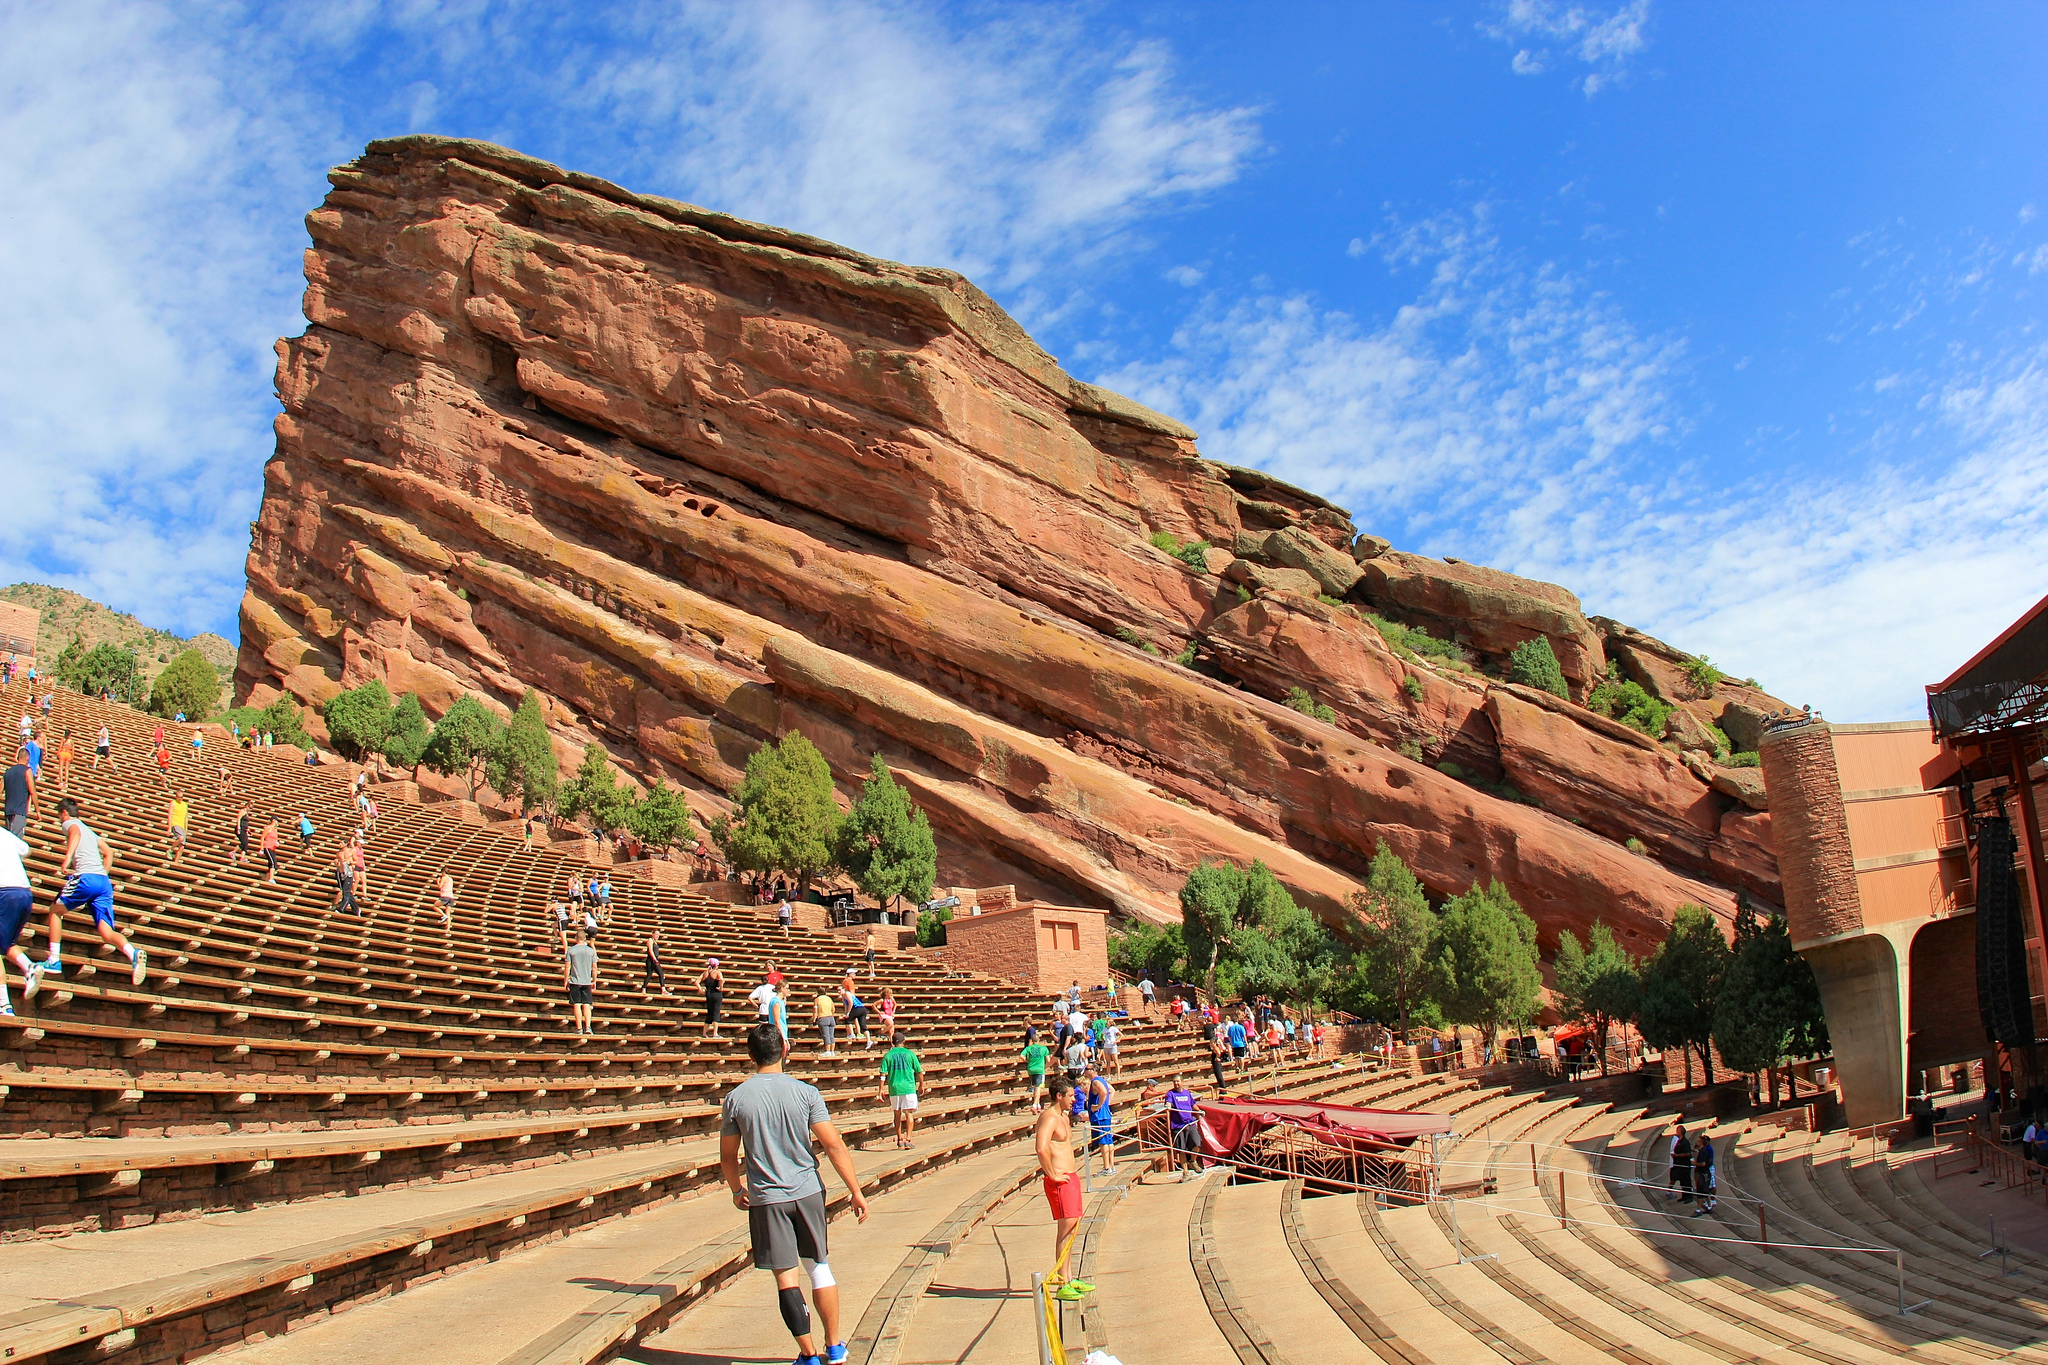 Exercise at Red Rocks Amphitheatre. (Flickr/daveynin)